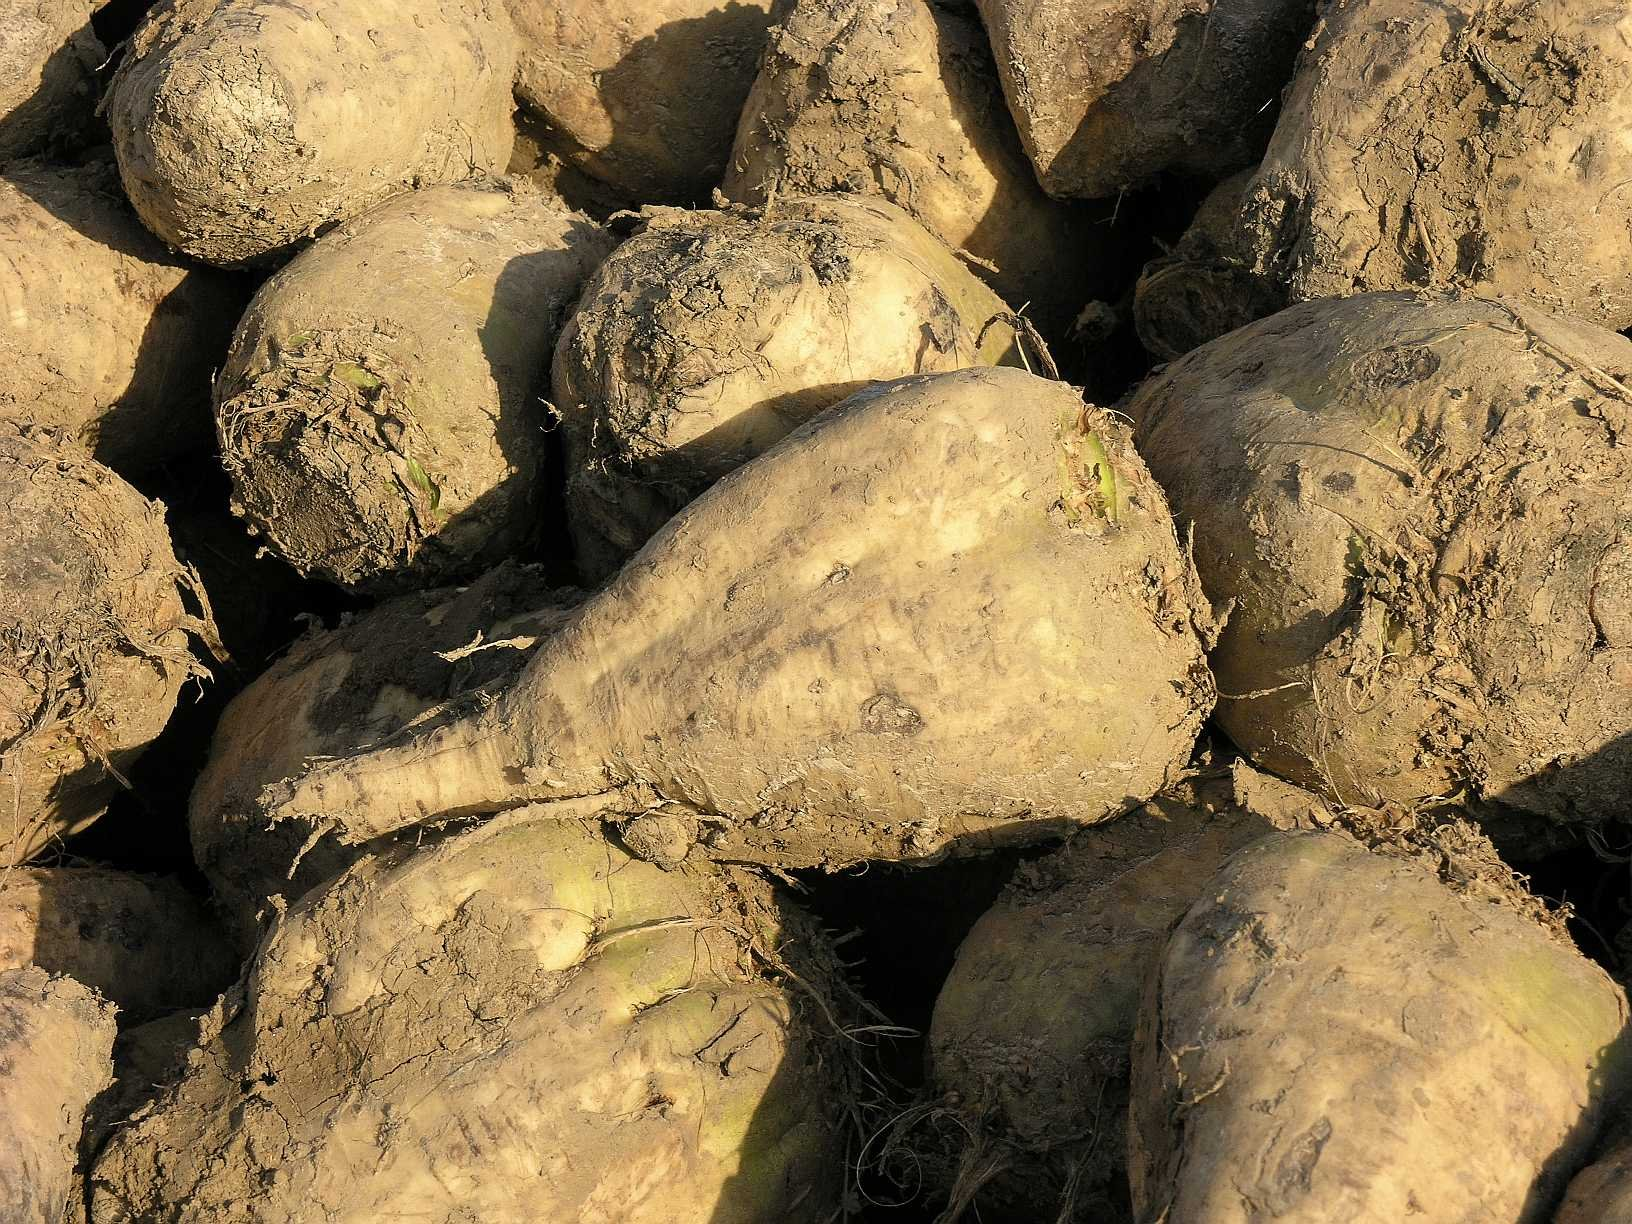 Beet Sugar (30 thru 25 LB seeds) Save$ Giant White Beet for Plot & Survival! C16 (150,000 seeds, or 10 lb) by Zellajake Farm and Garden (Image #5)